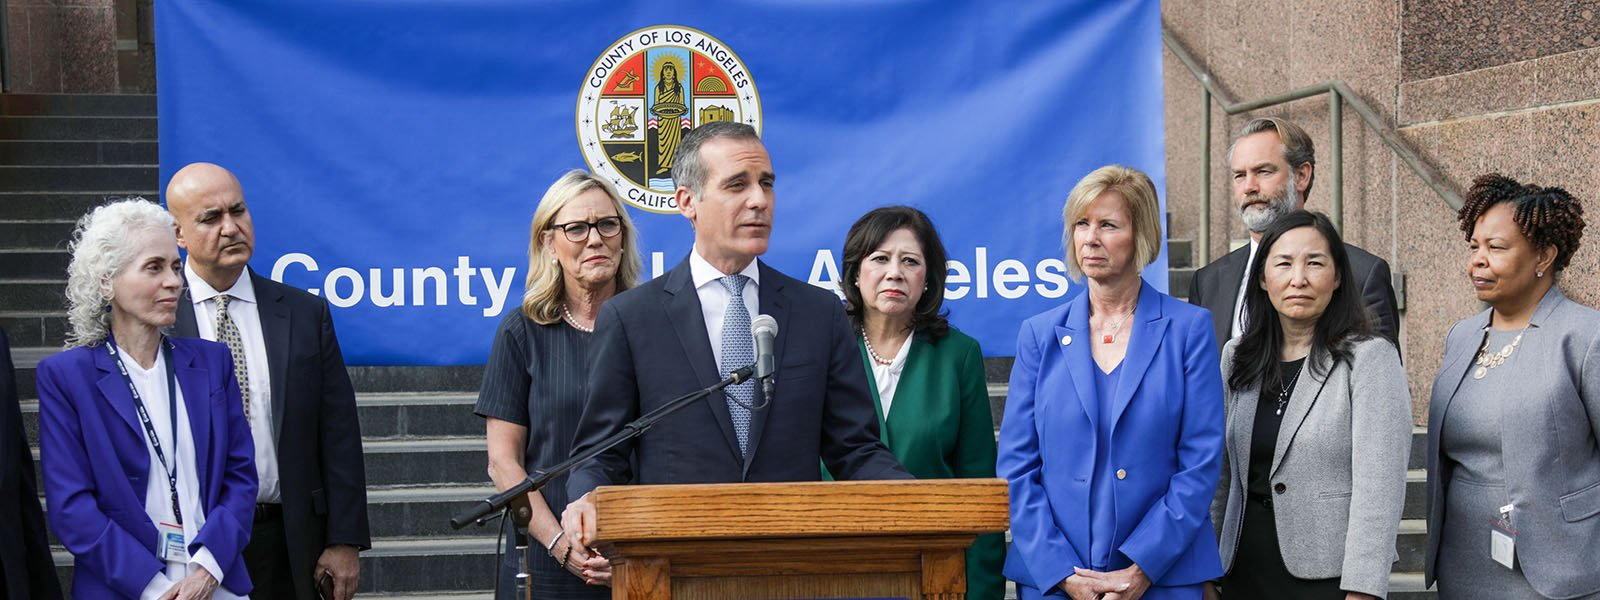 California & City of Los Angeles Declare Coronavirus Official Emergency